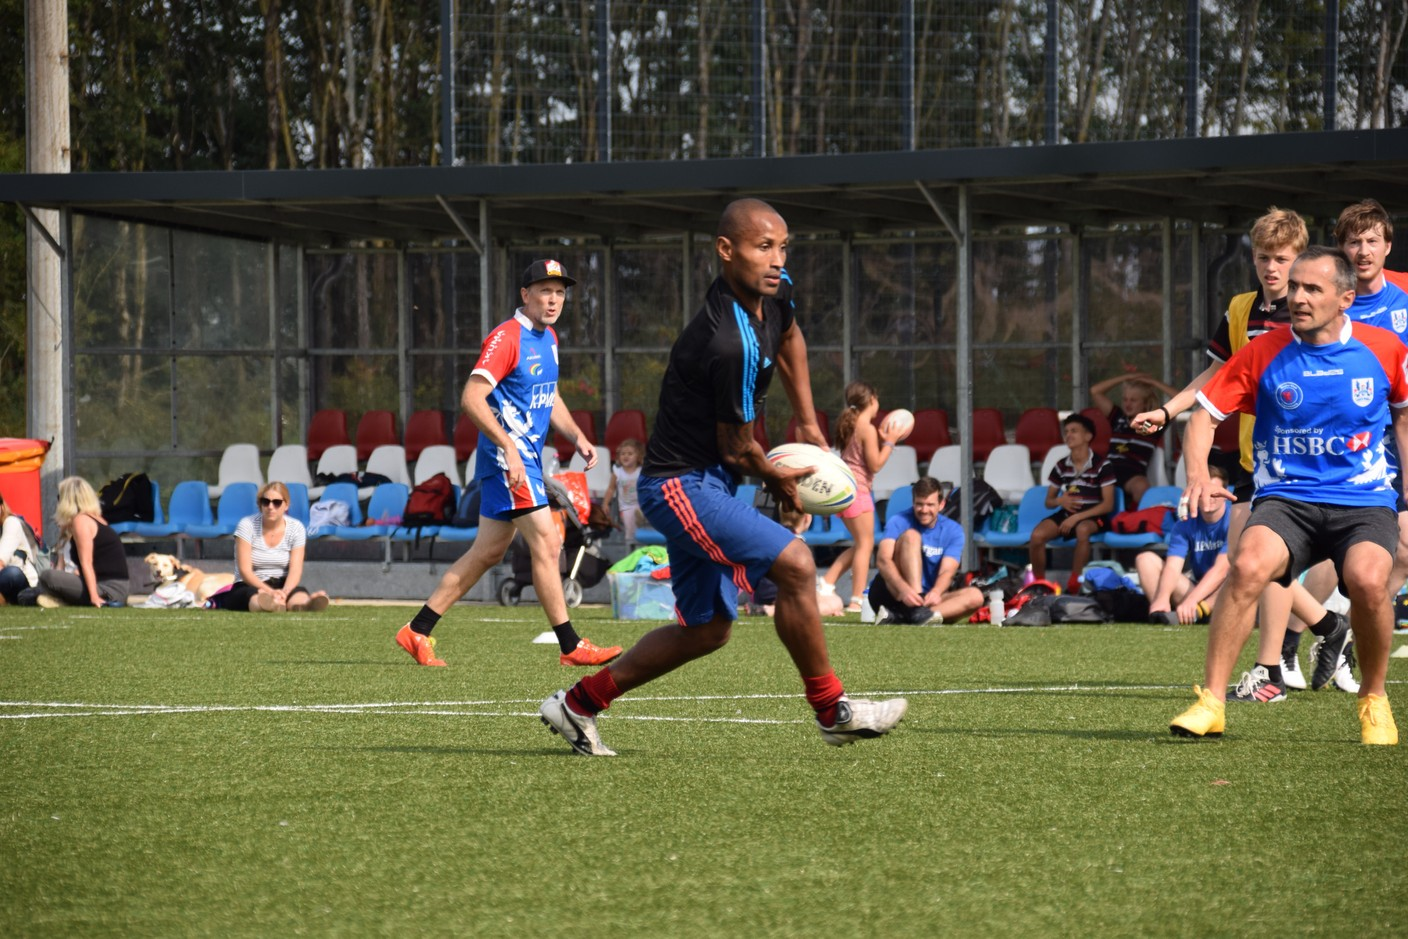 The Kick Cancer into Touch tournament took place on 19 September Photo: RCL Touch